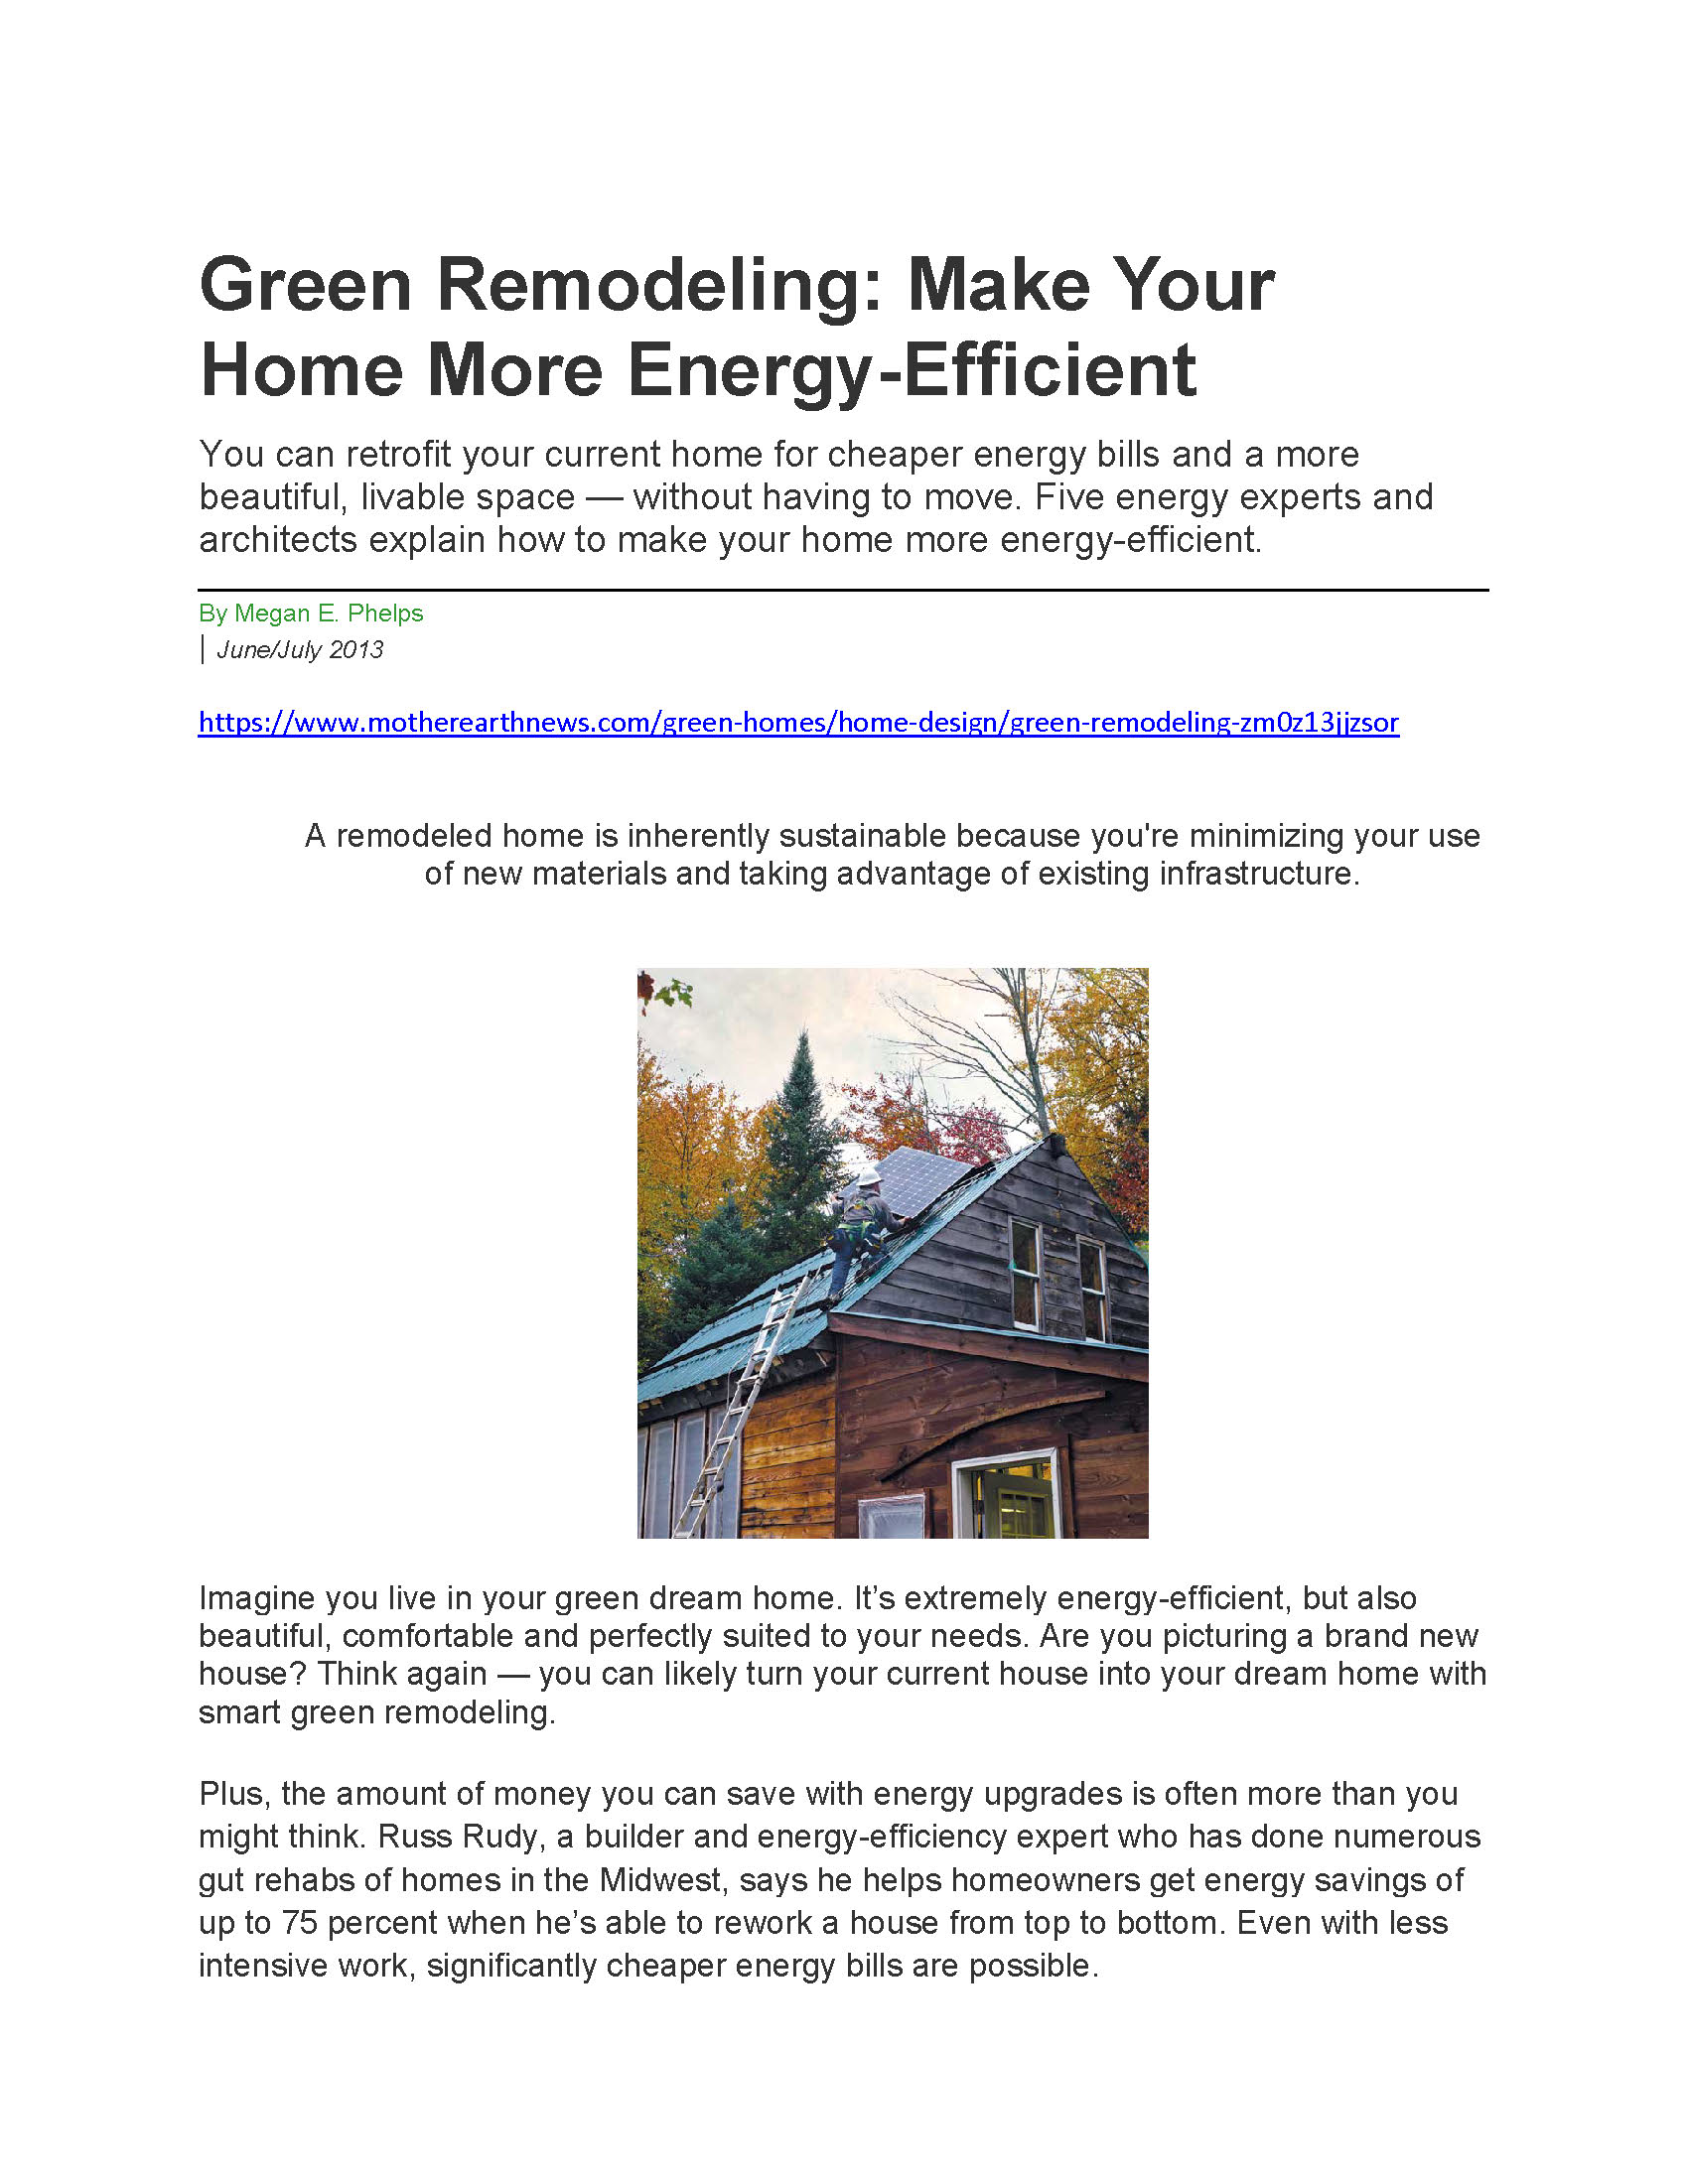 Green Remodeling Article in Mother Earth News